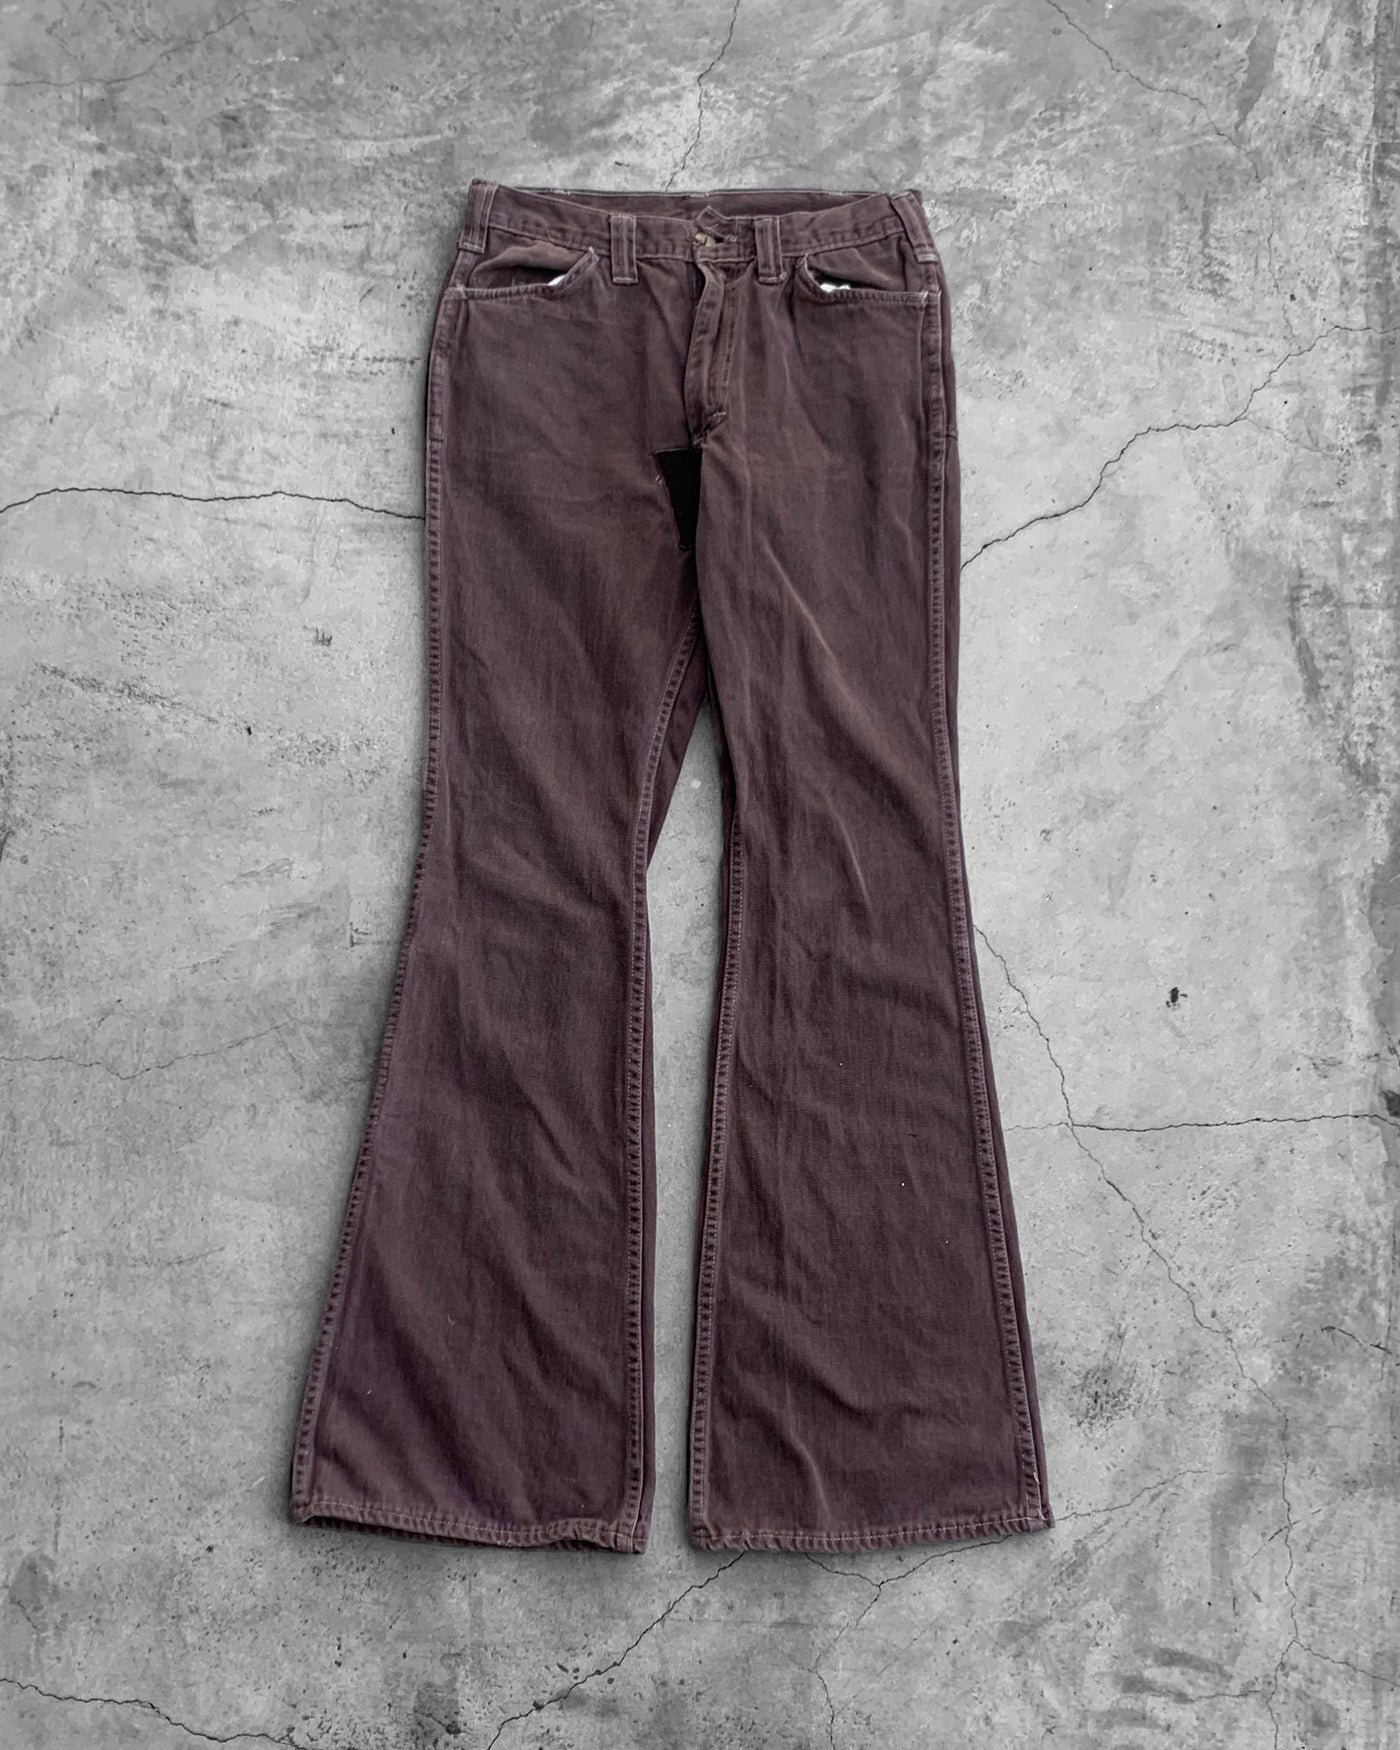 Lee Crotch Repaired Brown Flare Pants - 1960s